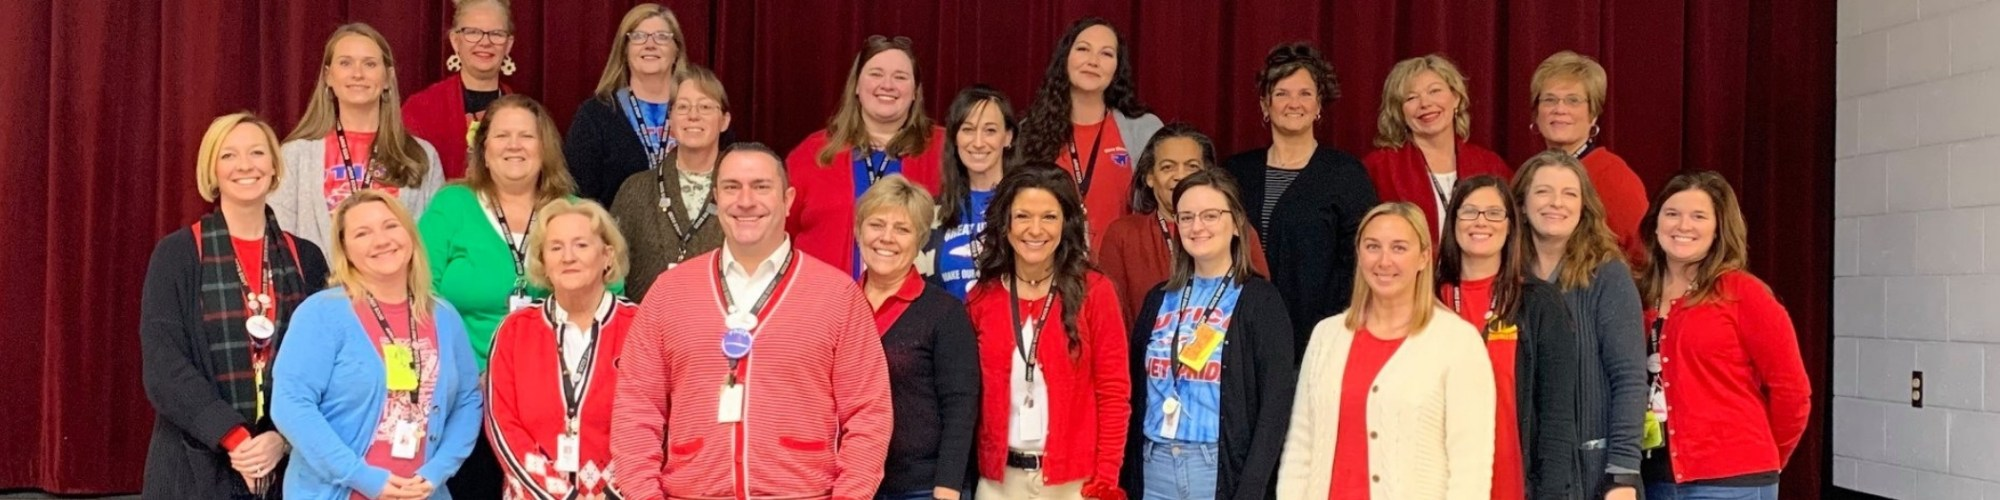 Teachers pose together on stage